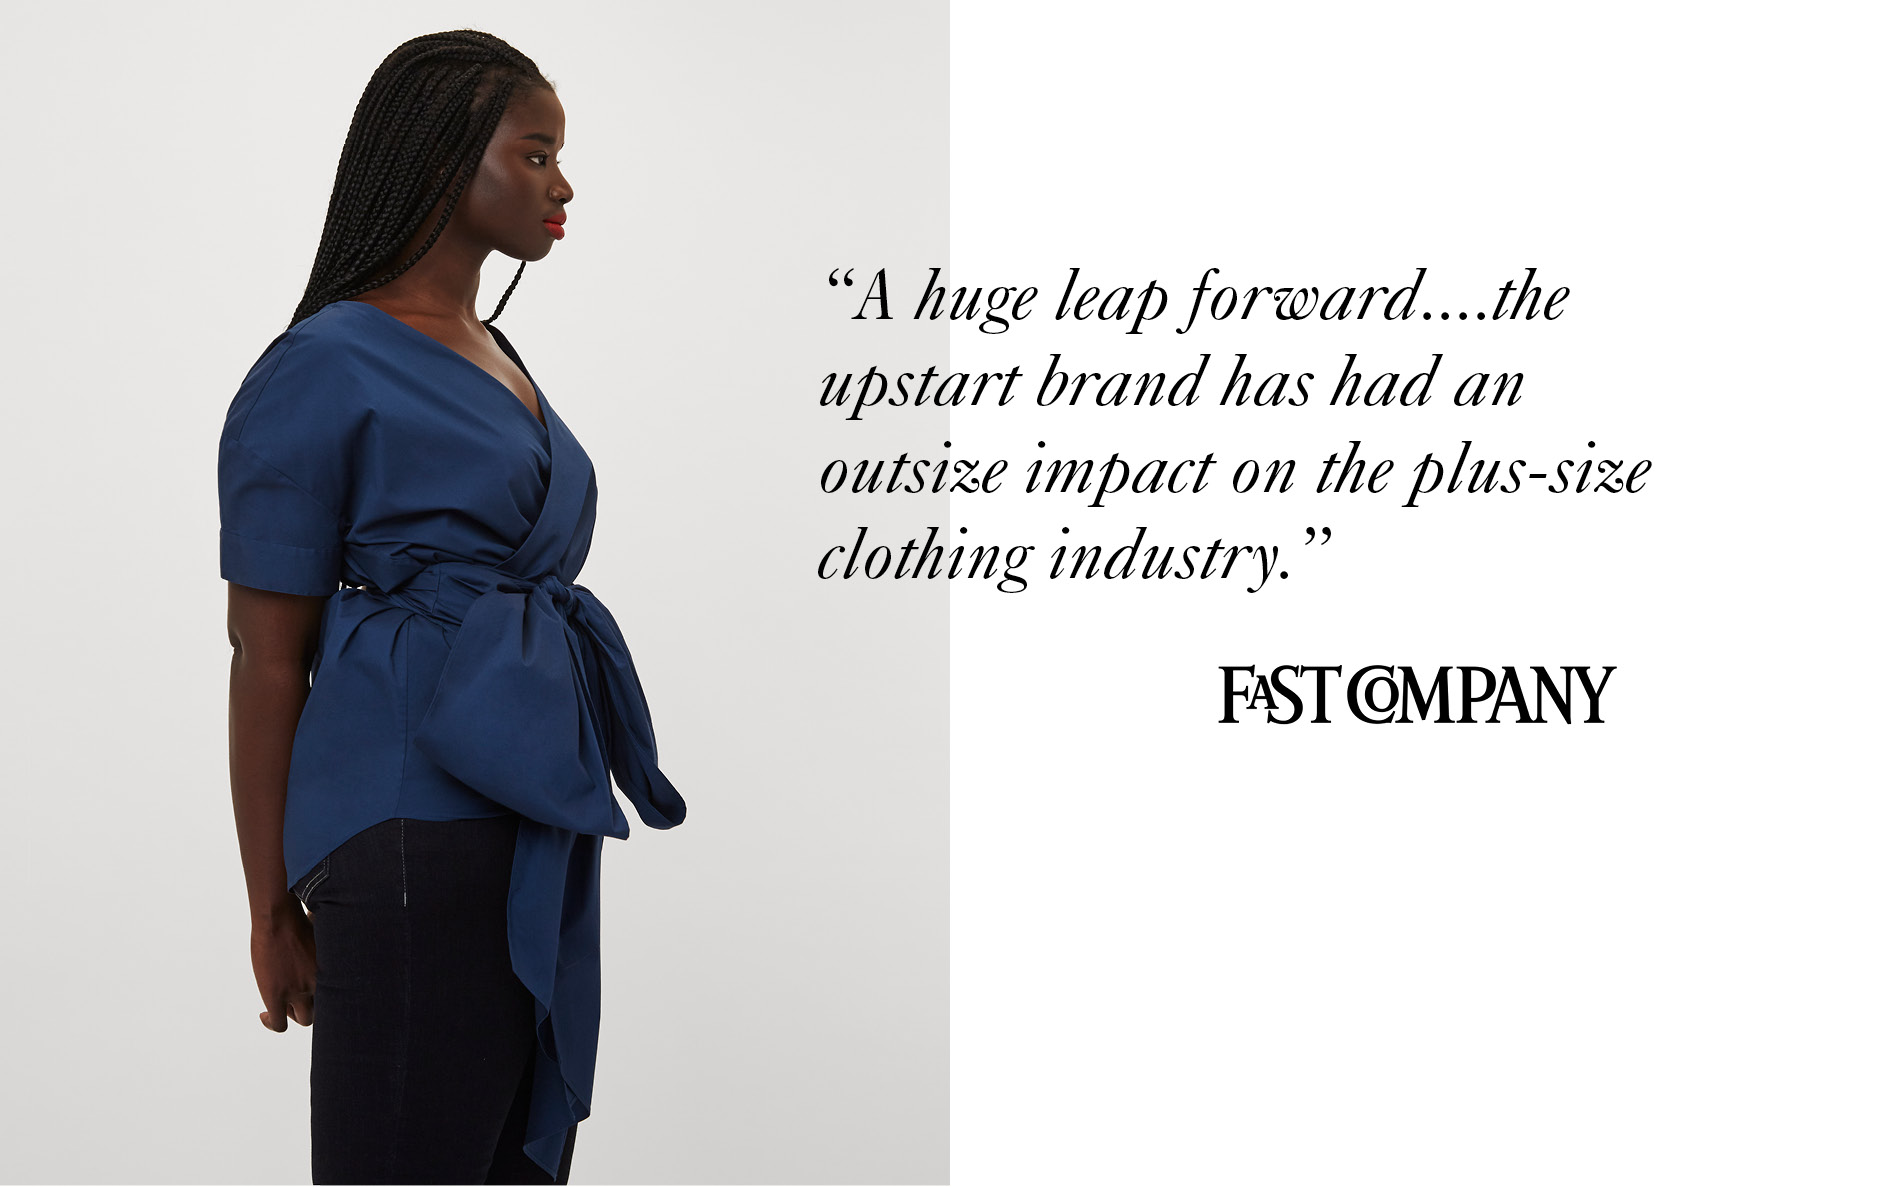 Model wearing Universal Standard with Fast Company's press mention.